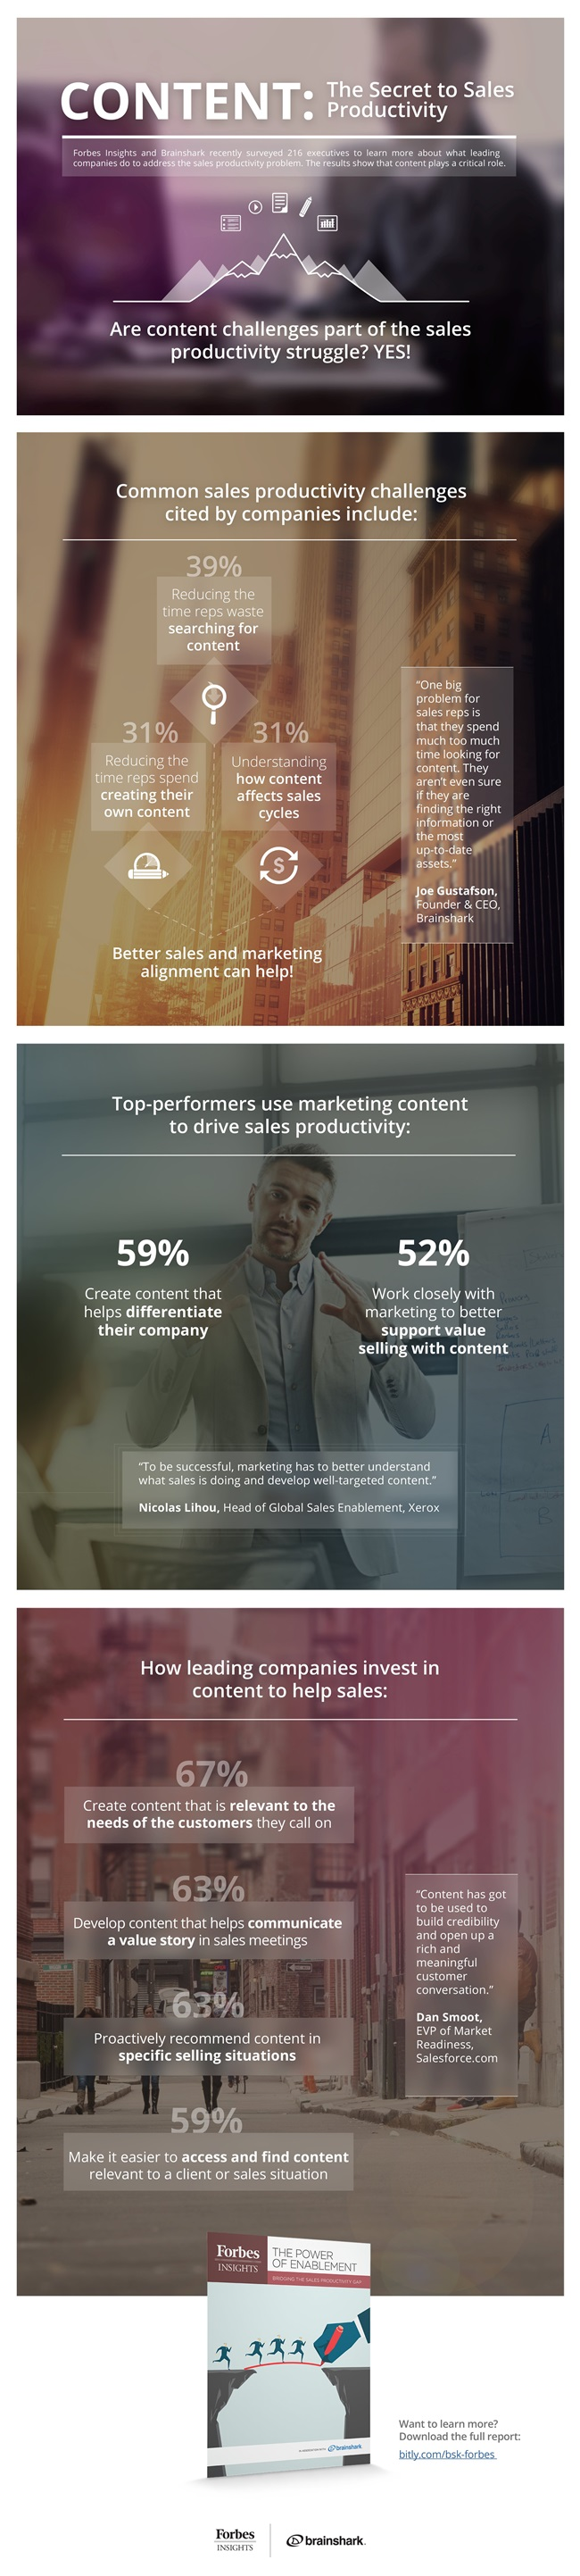 How Content Boosts Sales Productivity [Infographic]